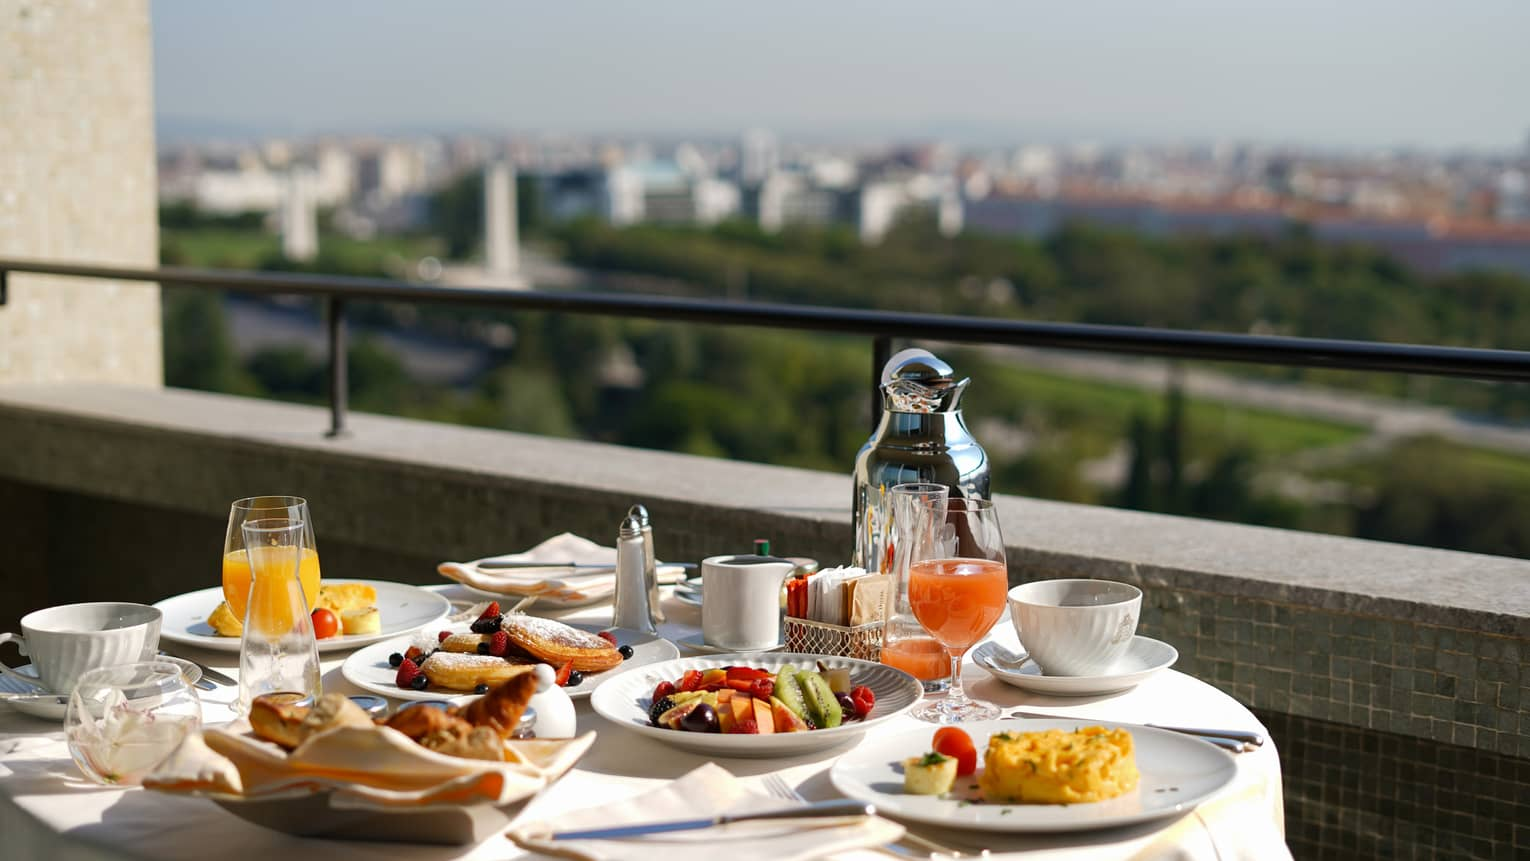 Sunny balcony breakfast dining table with fresh fruit plates, juice, coffee